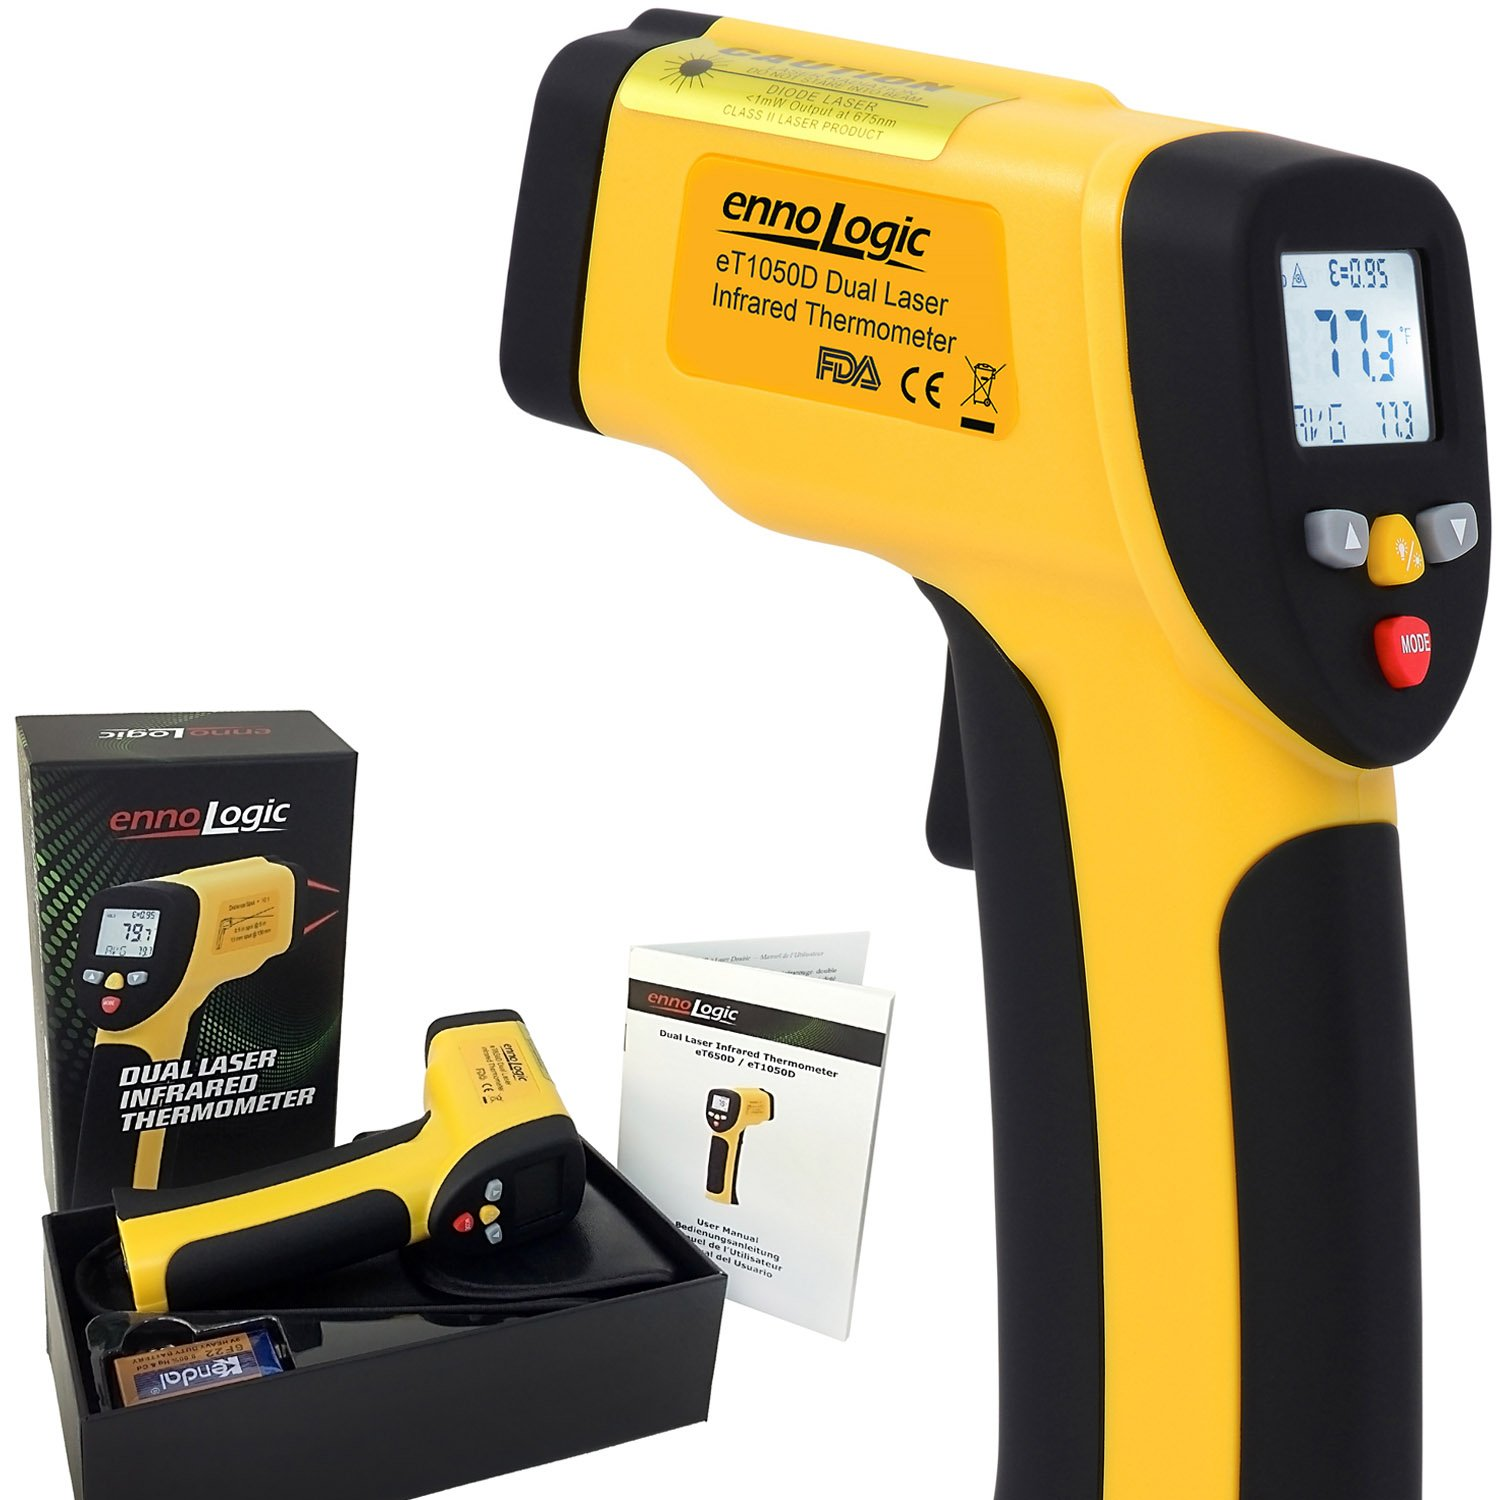 Temperature Gun by ennoLogic - Accurate High Temperature Dual Laser Infrared Thermometer -58°F to 1922°F - Digital Surface IR Thermometer eT1050D by ennoLogic (Image #1)